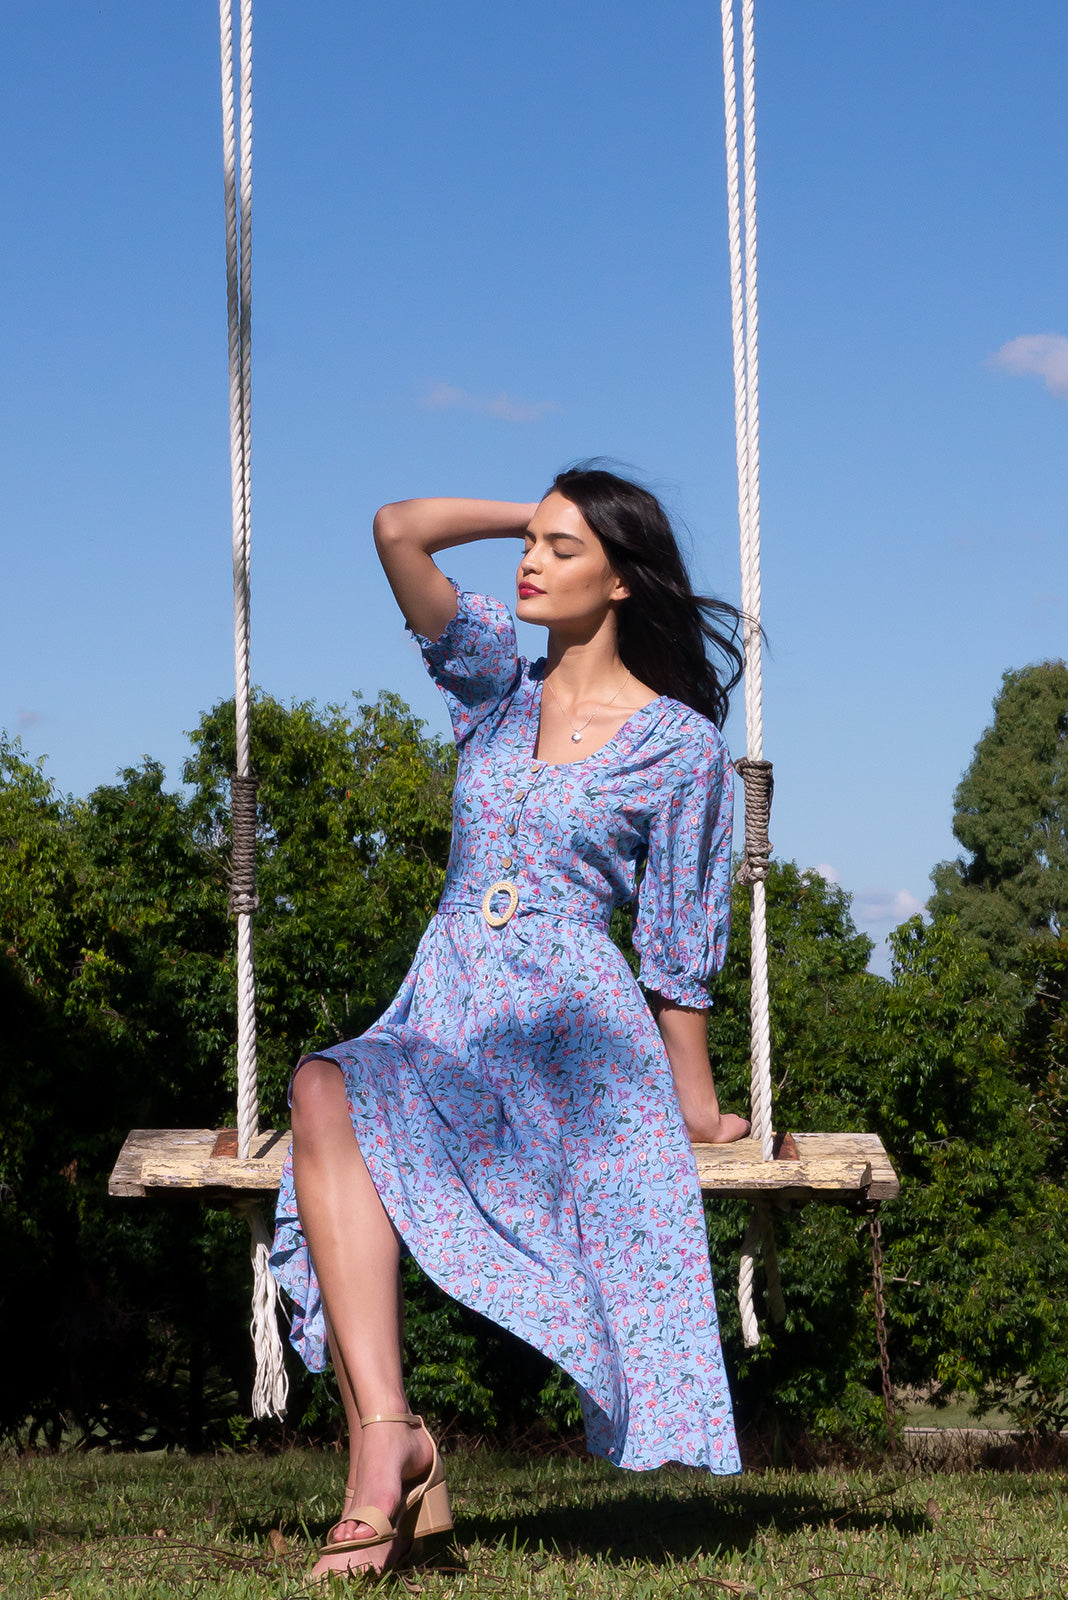 The Primrose Cornflower Blue Dress features functional buttons from bust to waist, elasticated back waistband, 3/4 sleeve with shirring cuffs, side pockets, woven 100% rayon in sky blue base with pink floral vine print and coming matching belt to cinch waist.